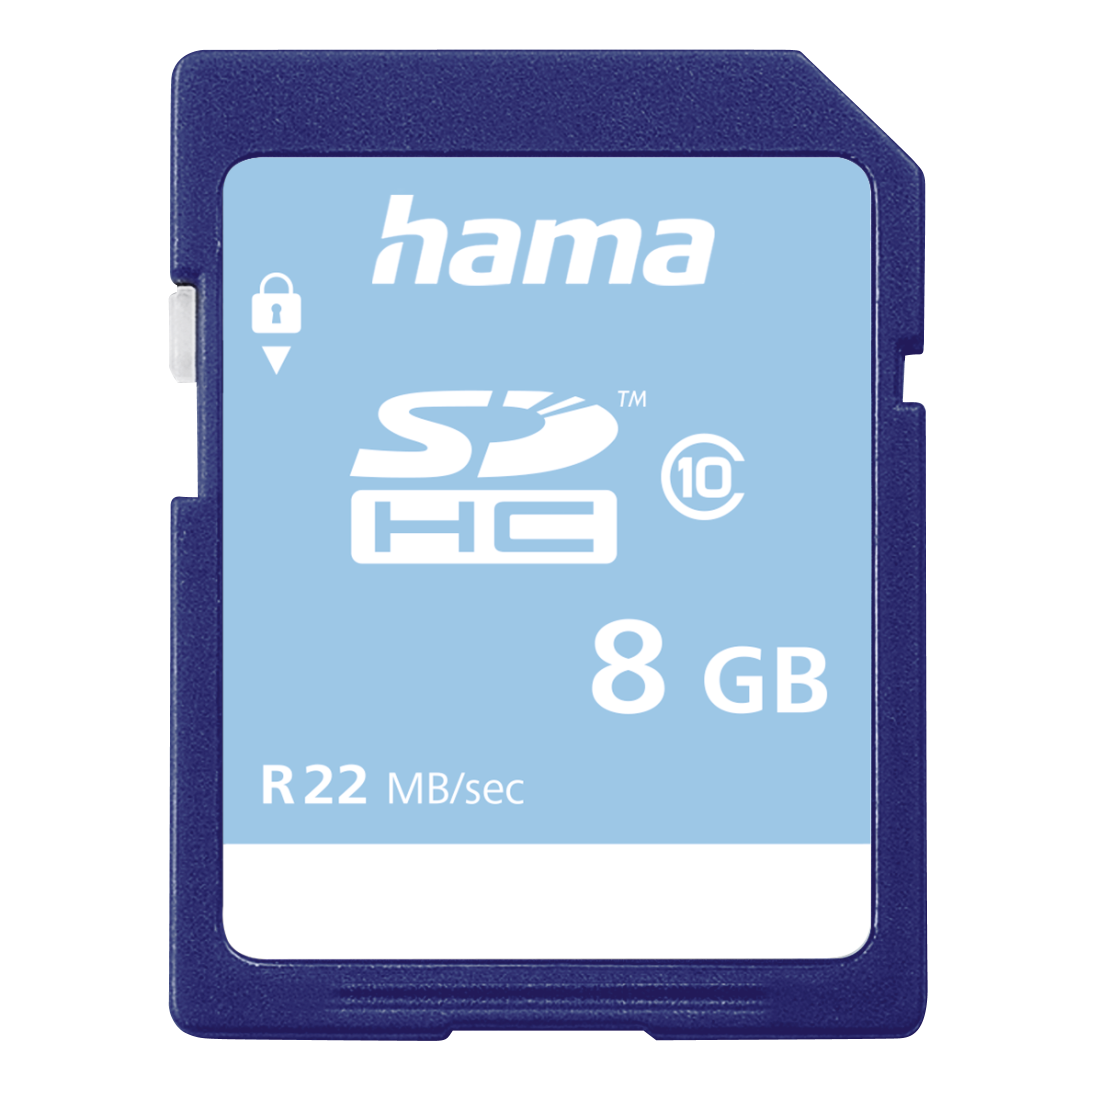 abx Druckfähige Abbildung - Hama, SDHC 8GB Class 10 22MB/s, Schmale Verpackung